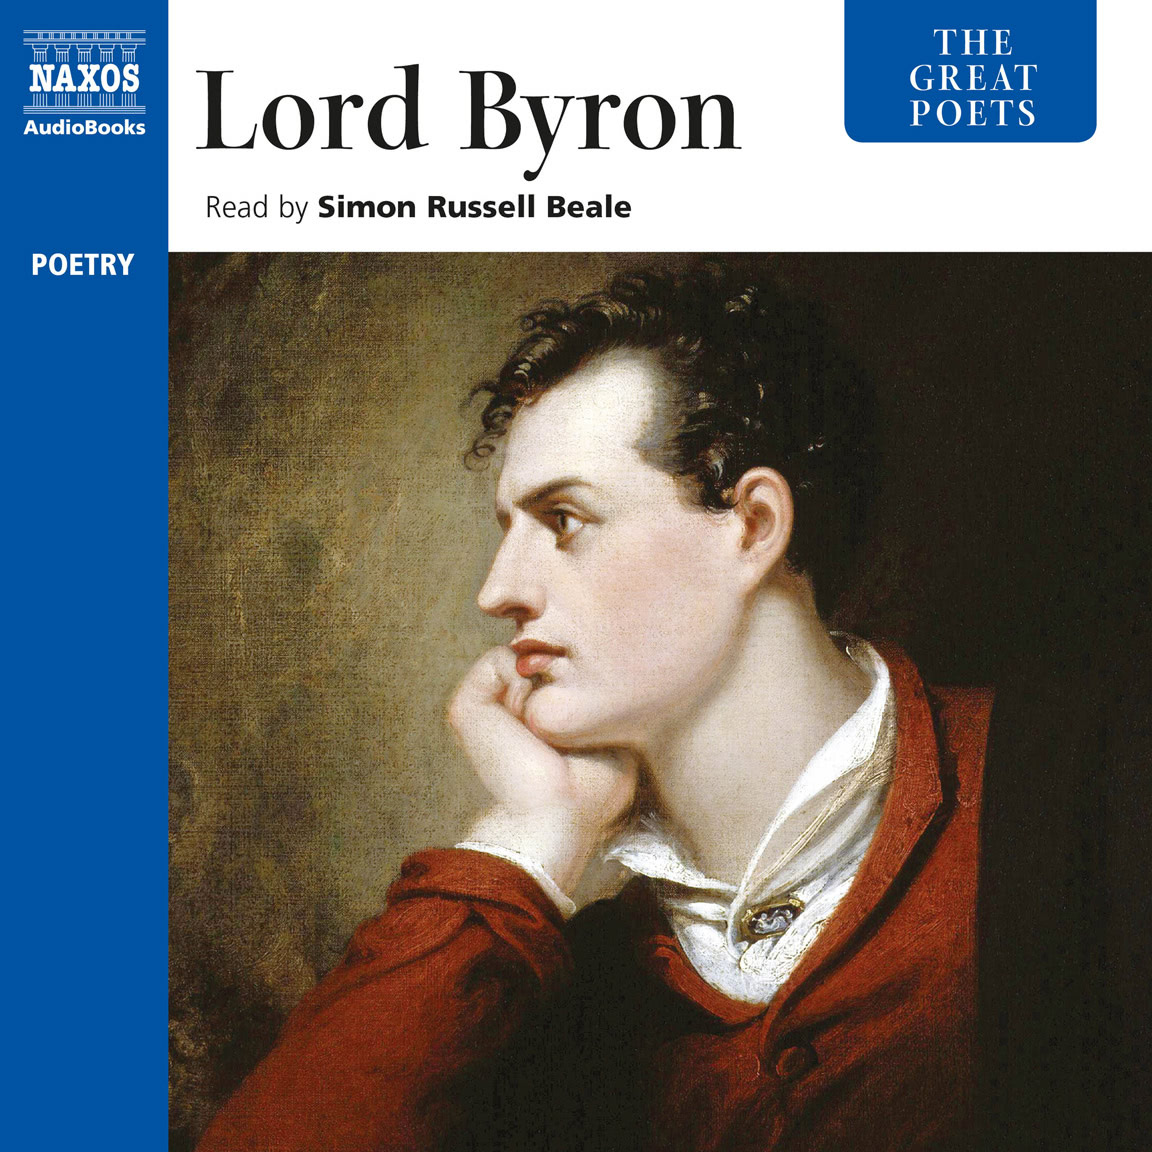 The Great Poets – Lord Byron (selections)